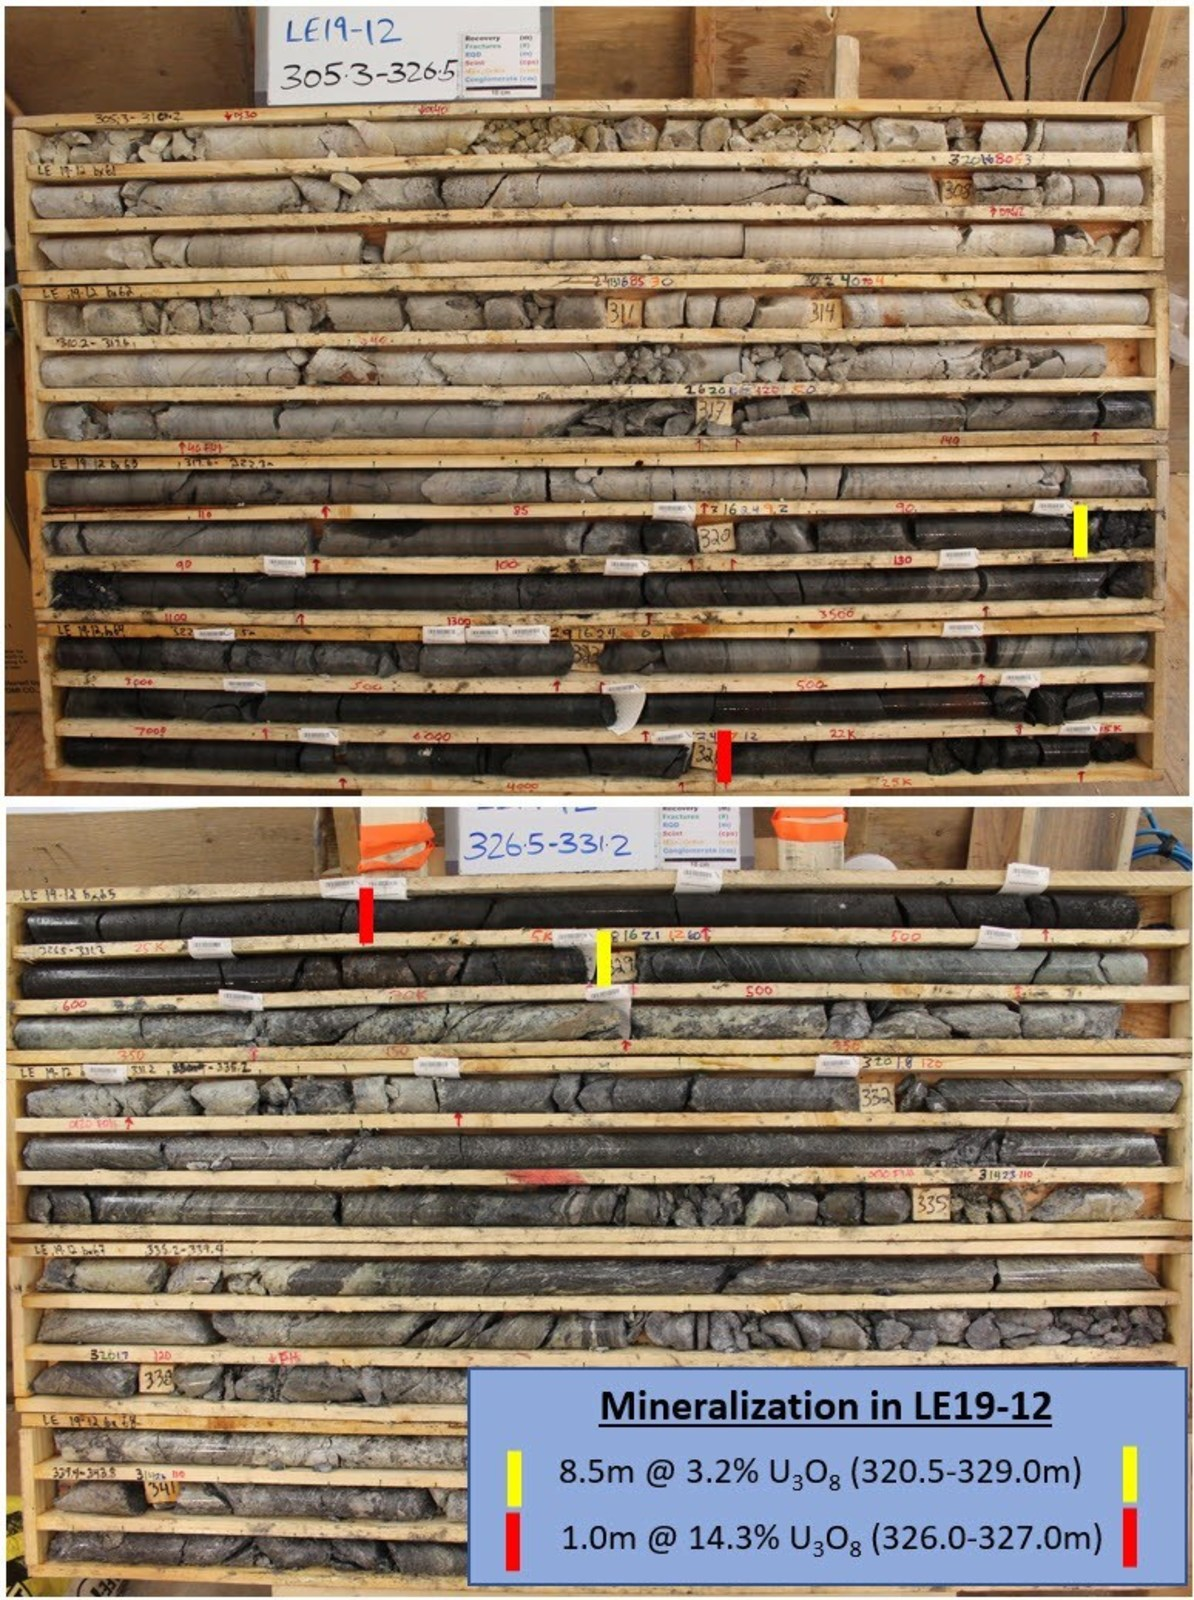 Figure 5 – Core Photos of Mineralization in Drill Hole LE19-12